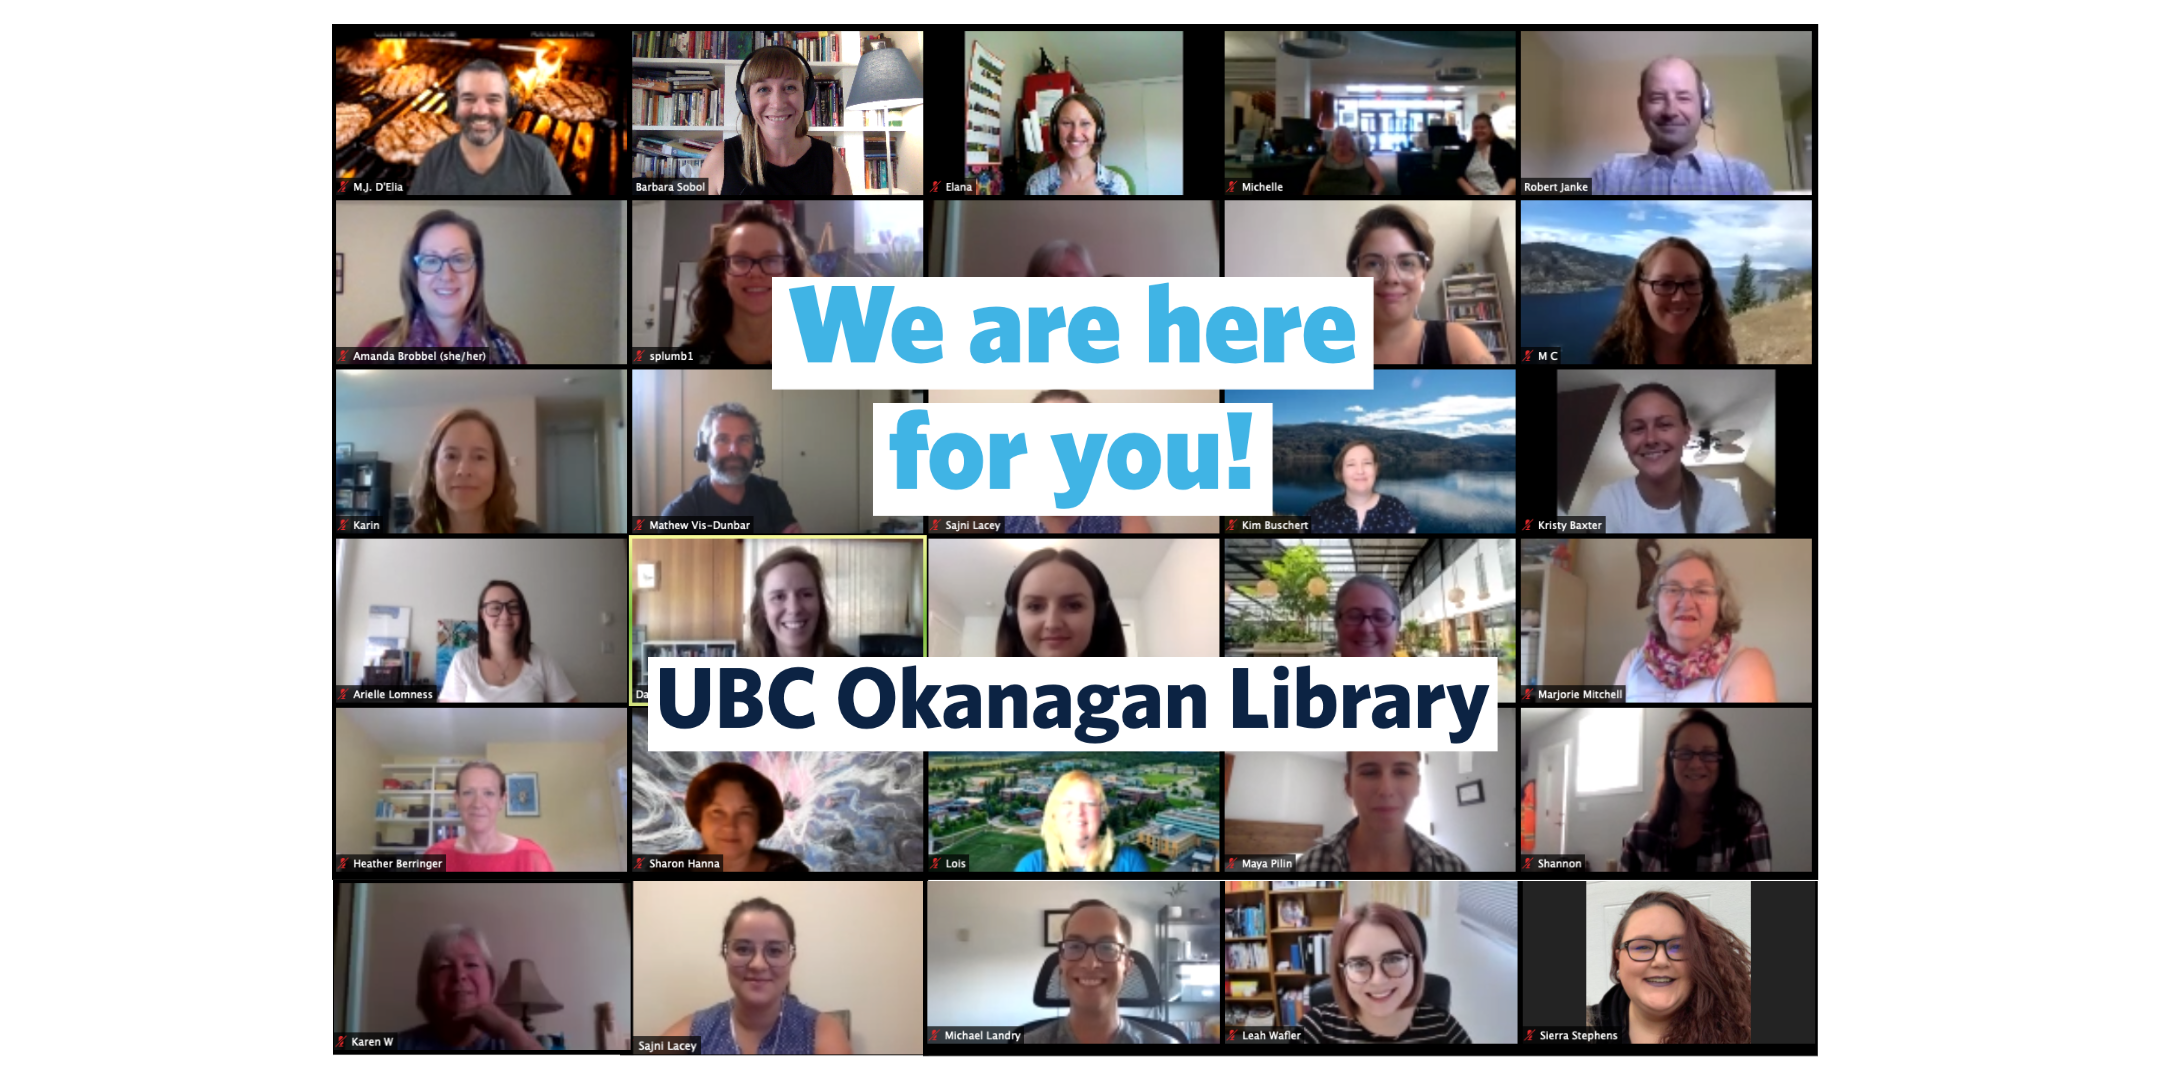 We are here for you! UBC Okanagan Library.